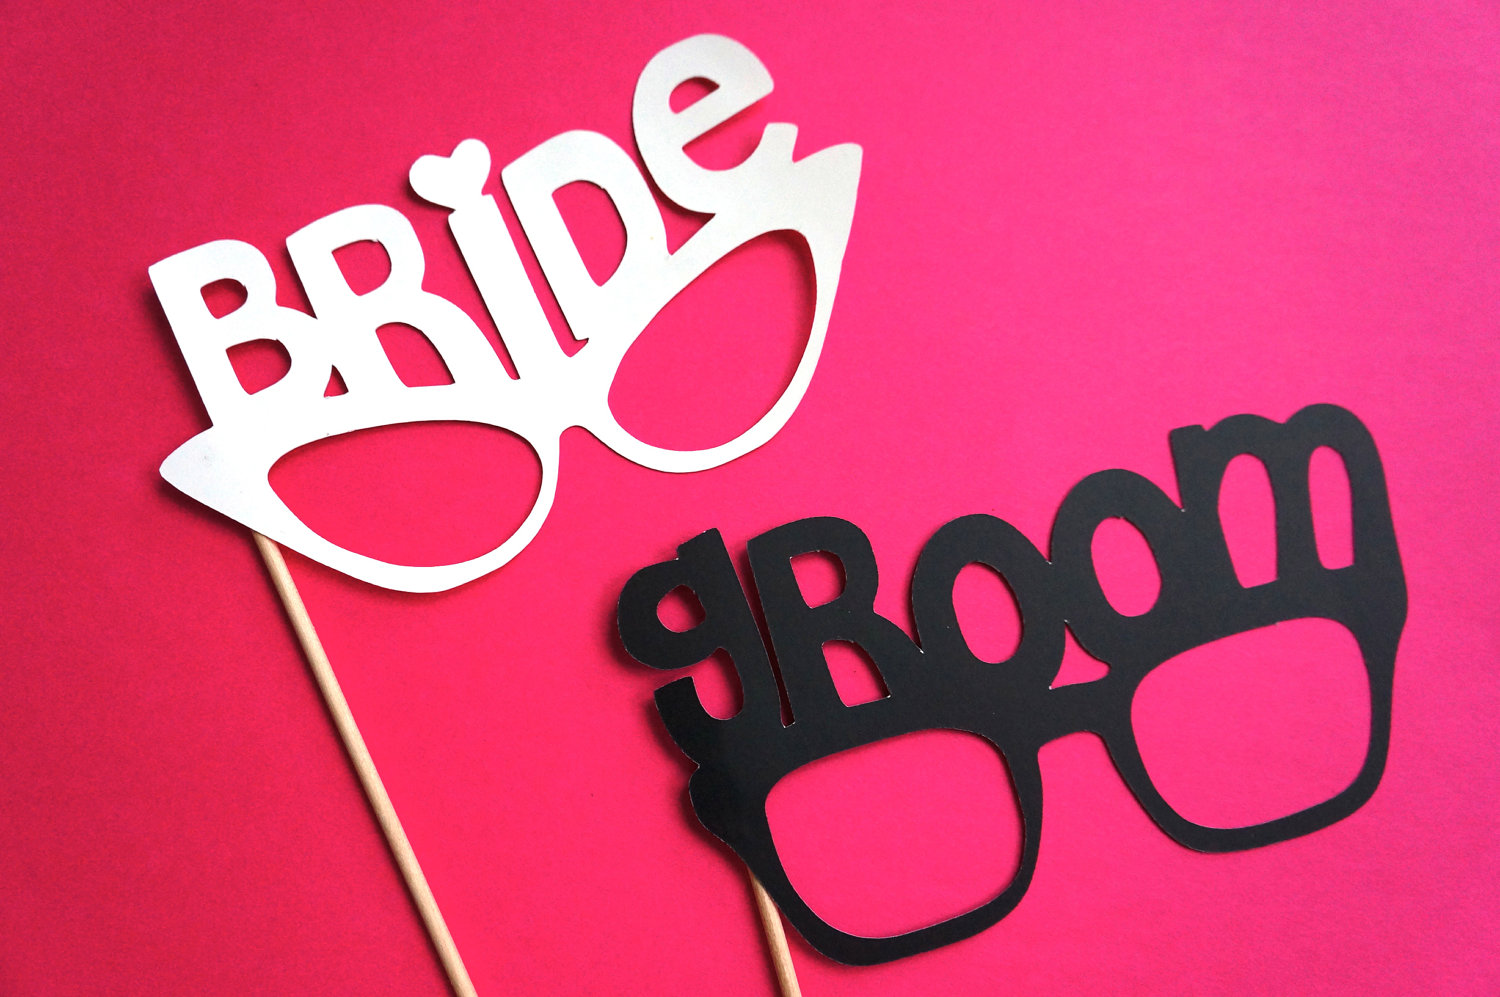 Cute-bride-and-groom-wedding-photobooth-props.original